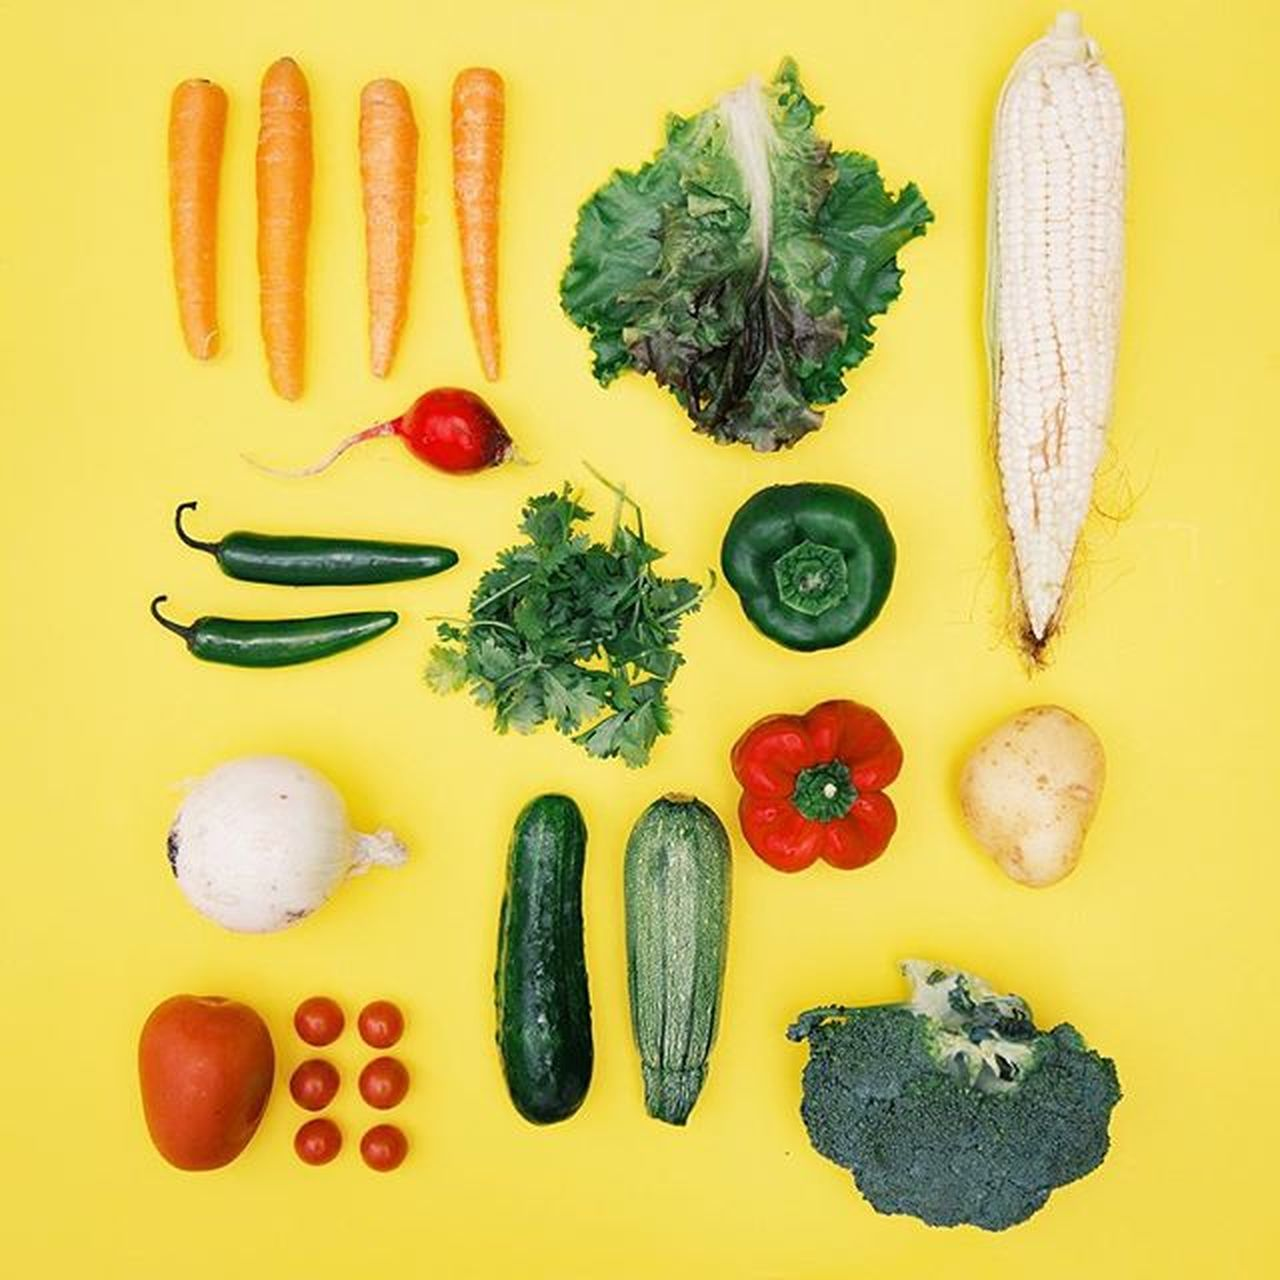 vegetable, carrot, healthy eating, variation, raw food, studio shot, freshness, food, tomato, no people, food and drink, large group of objects, multi colored, squash - vegetable, day